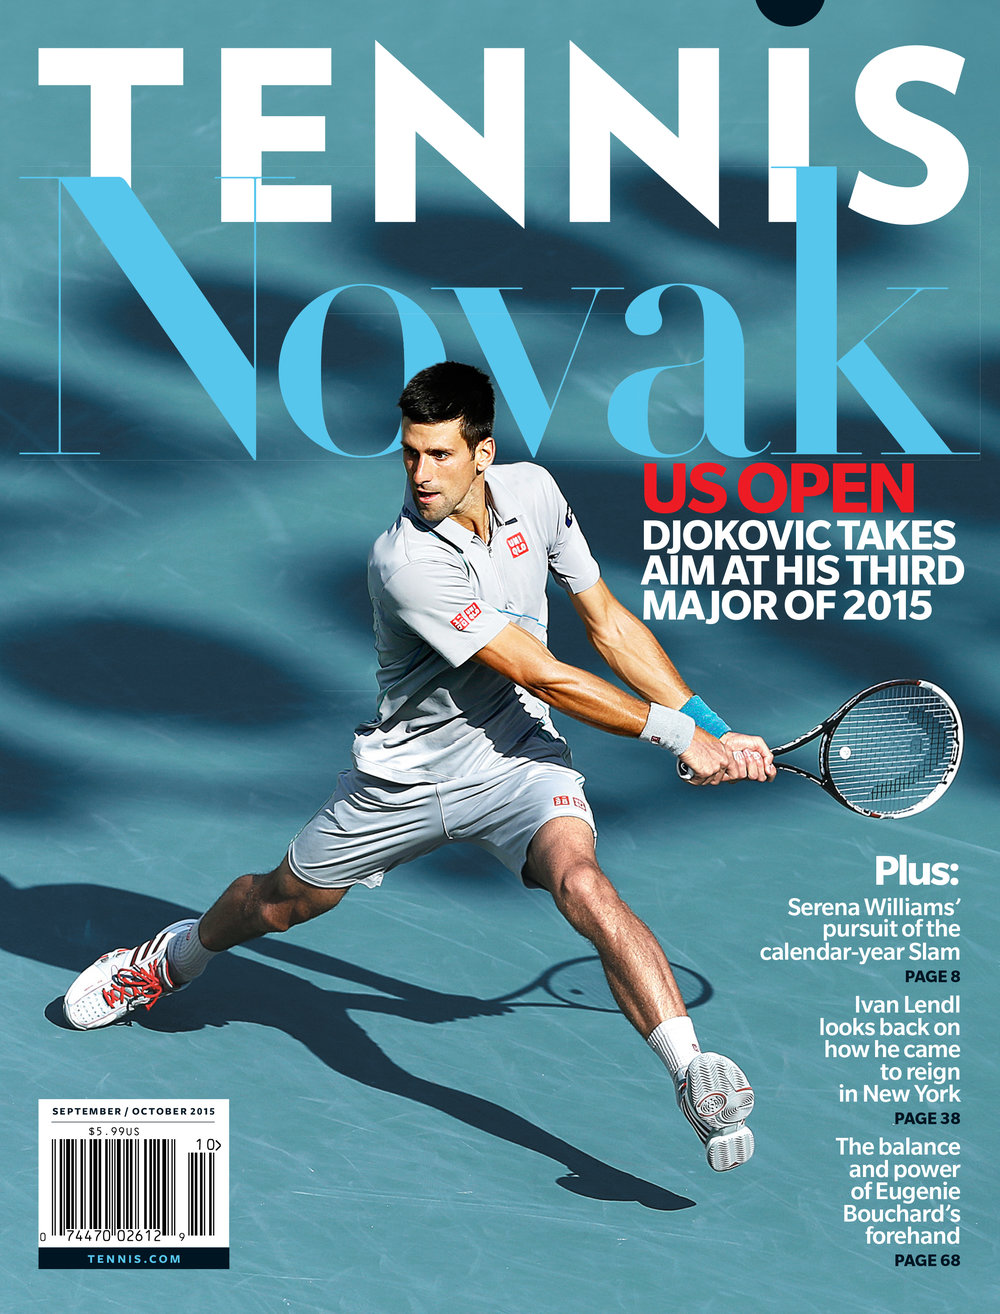 Tennis Magazine - Filler text goes here cheers